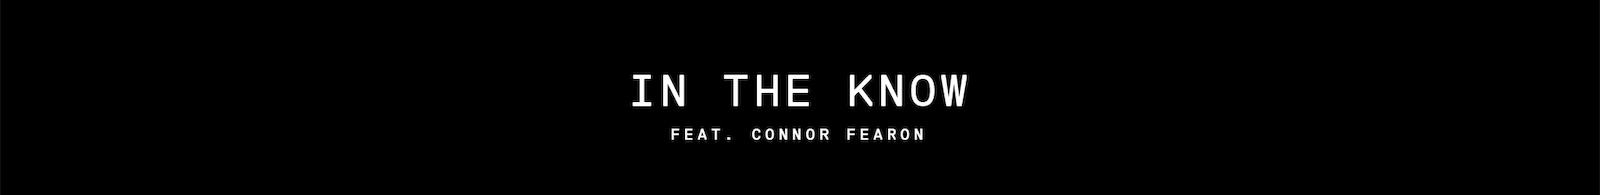 In the Know featuring Connor Fearon